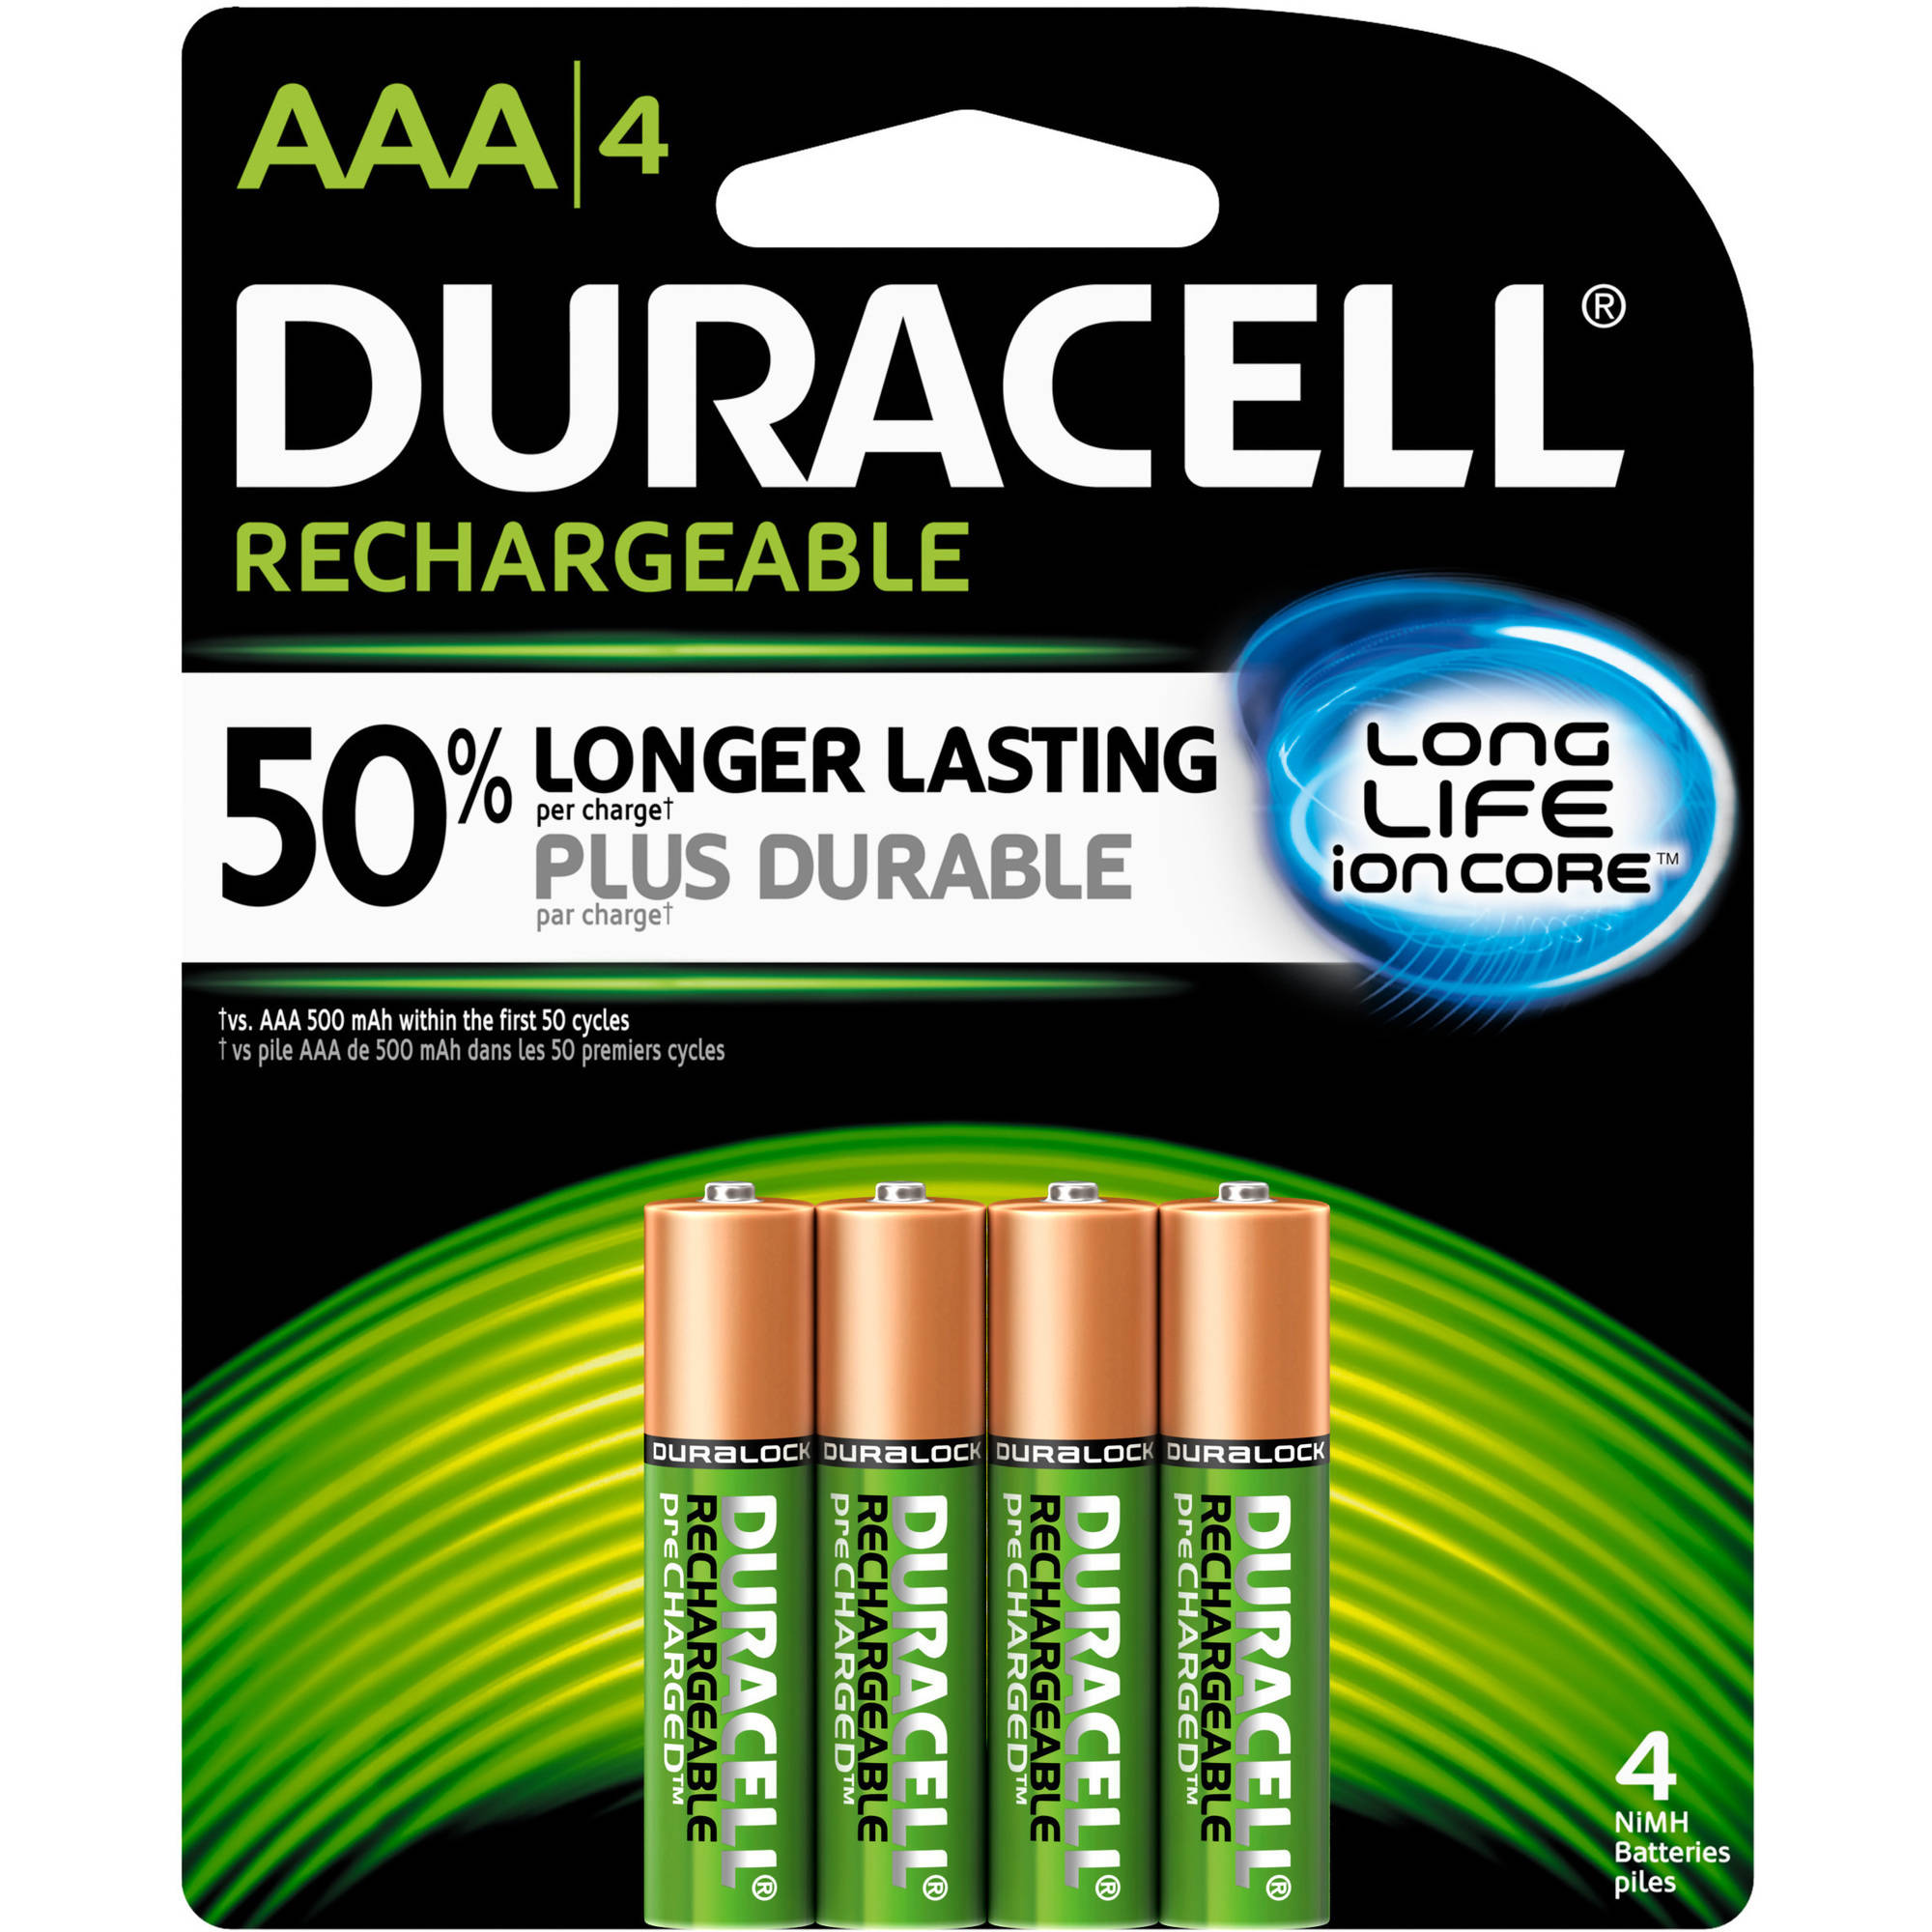 Duracell Rechargeable AAA Pre-Charged Household Batteries